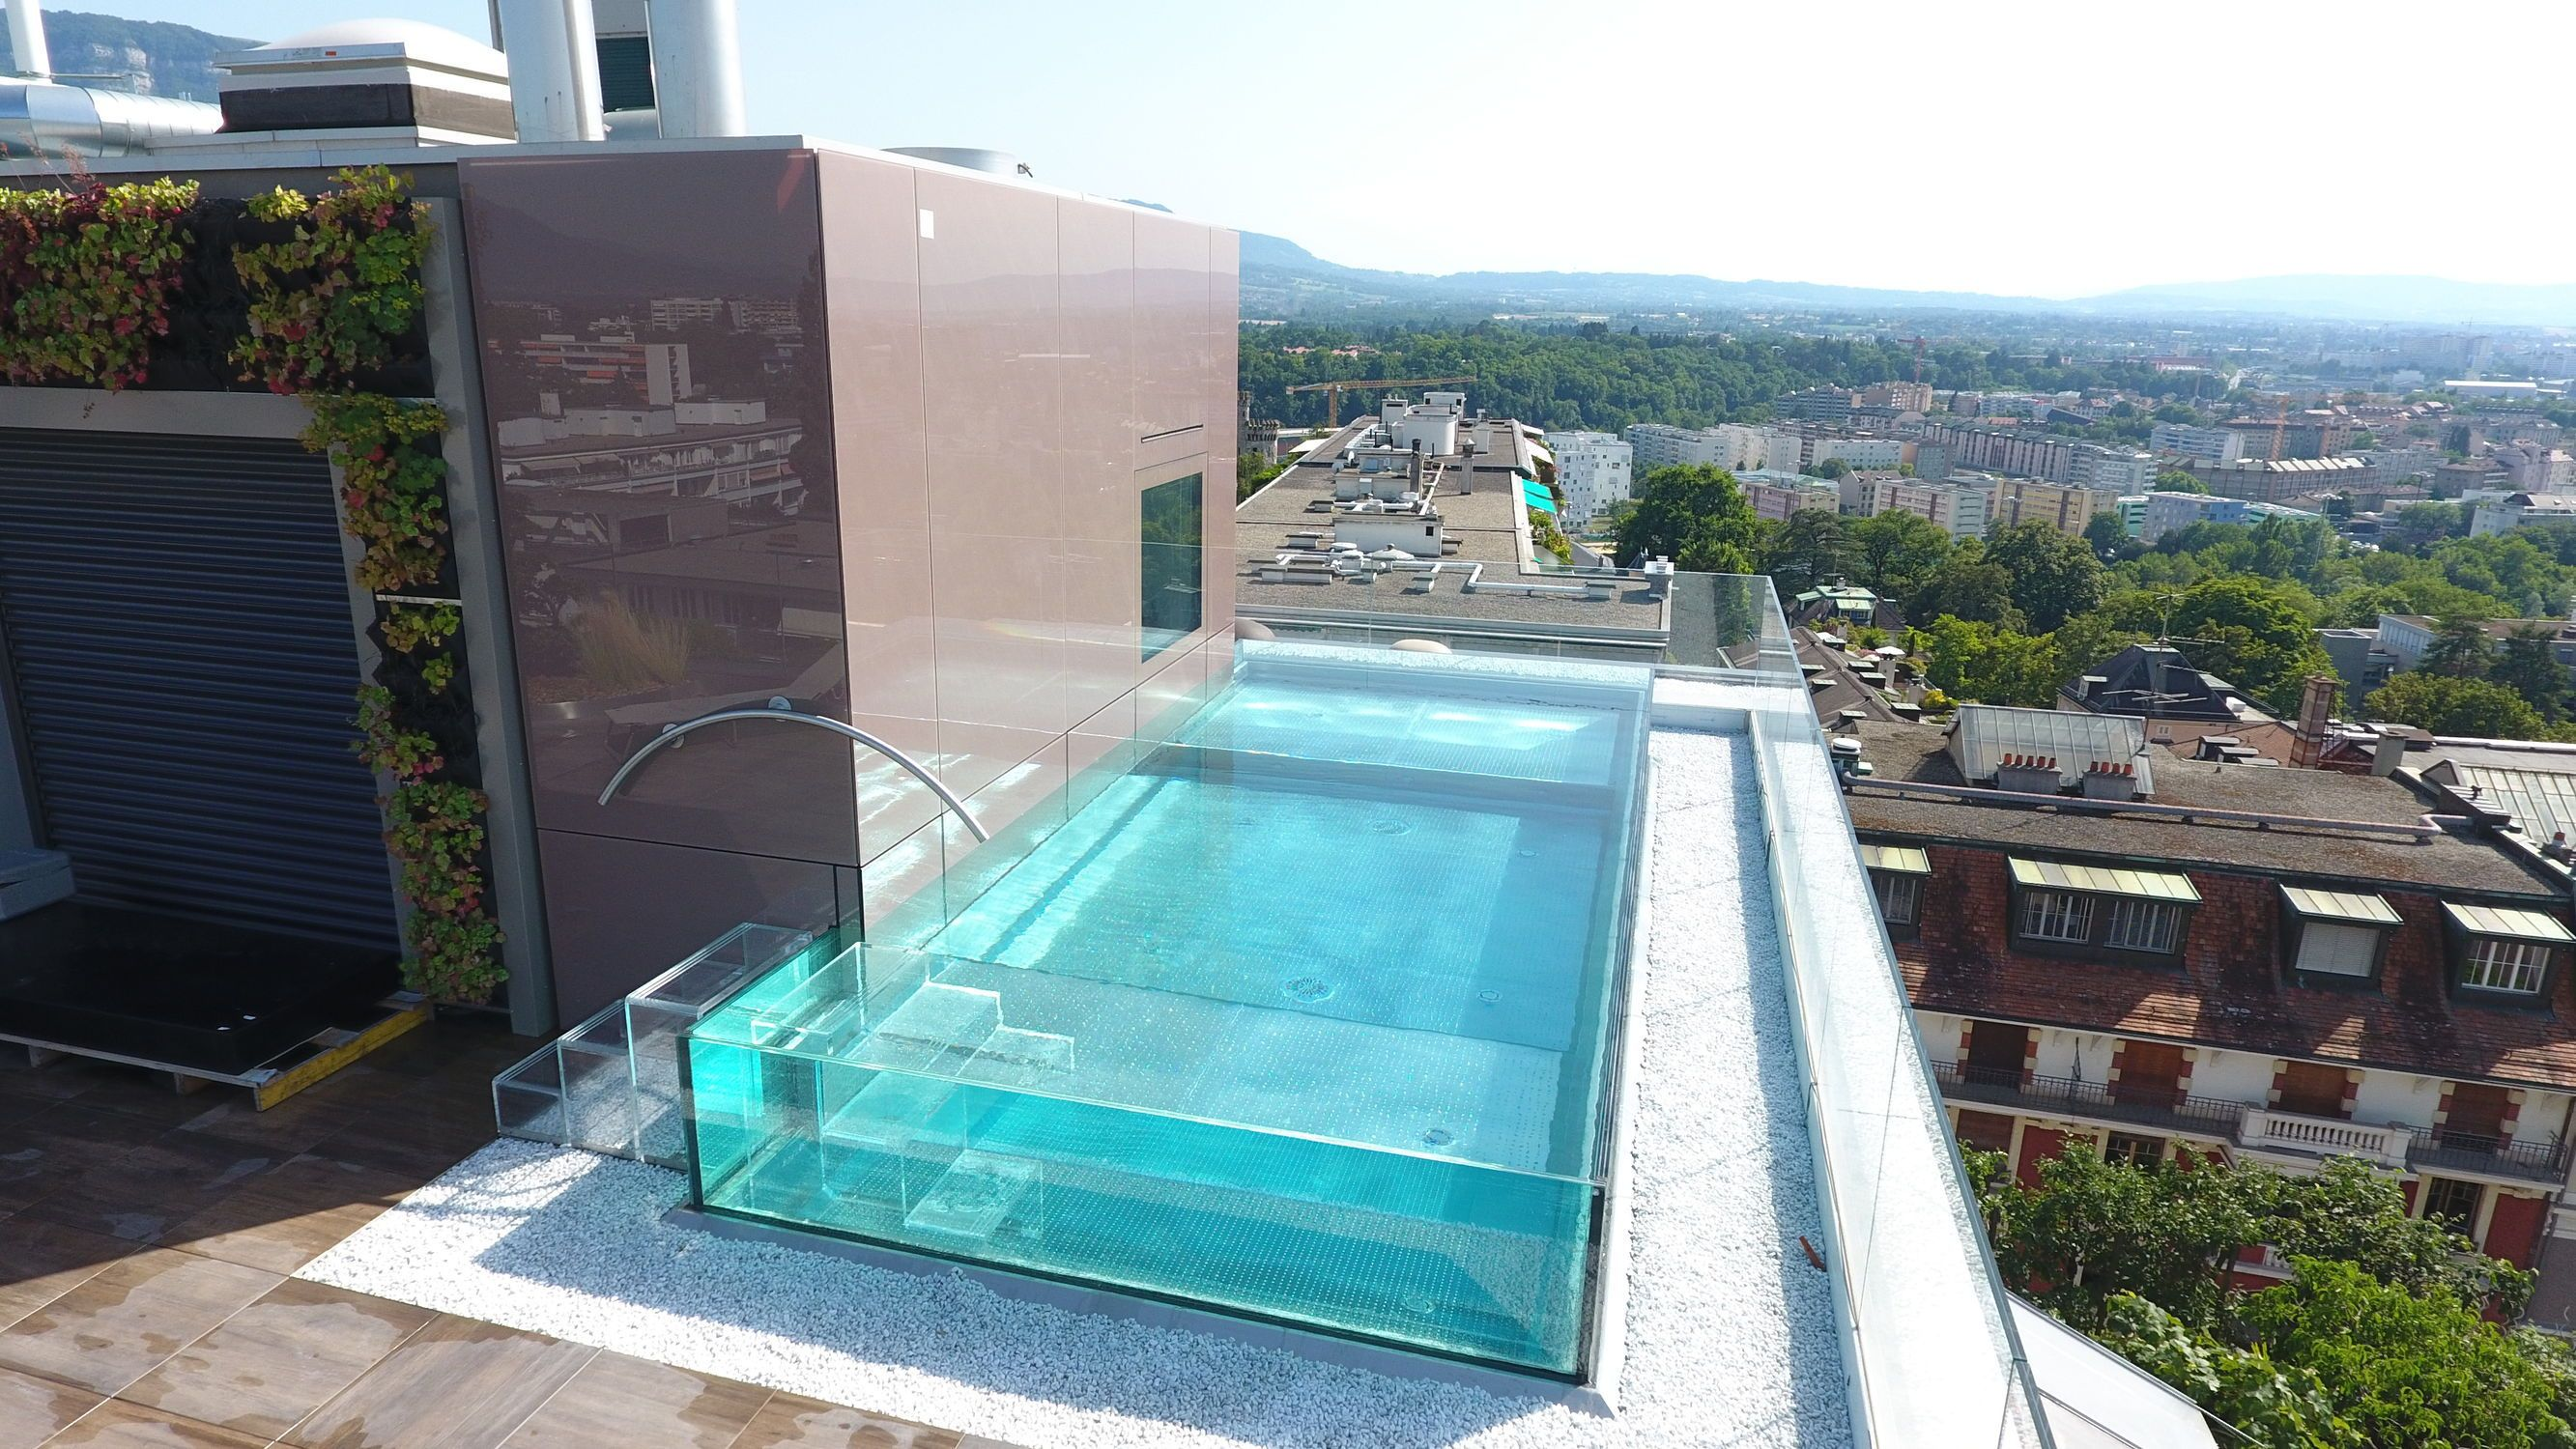 Pool Edelstahl Semi-inground Swimming Pool / Glass / Stainless Steel / Custom Excelsior Piscines Carre Bleu | Swimming Pools, Swimming Pools Inground, Glass Pool